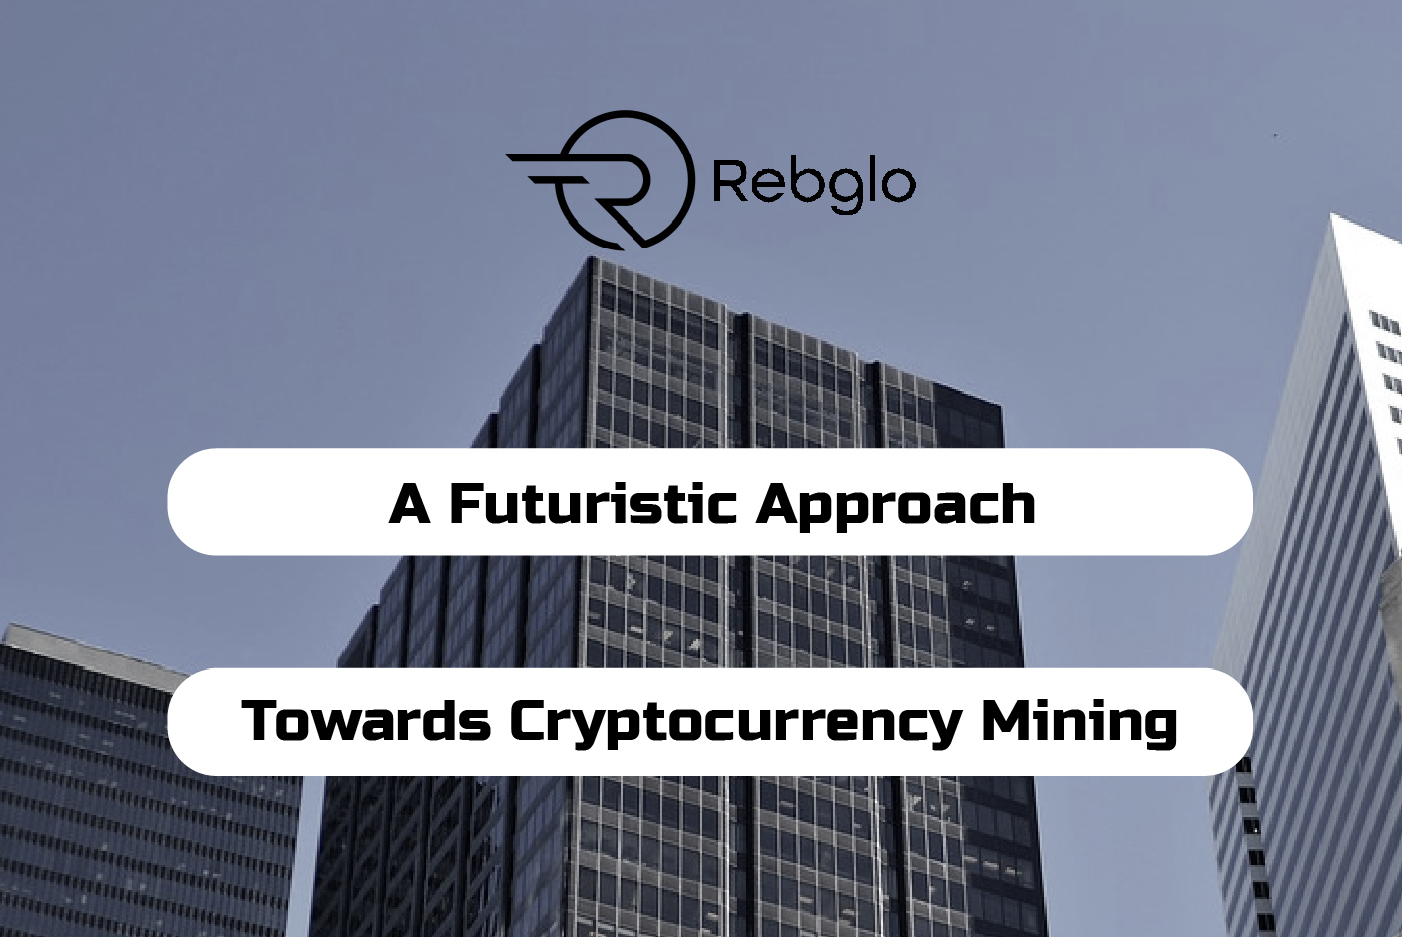 REBGLO - A Futuristic Approach Towards Cryptocurrency Mining